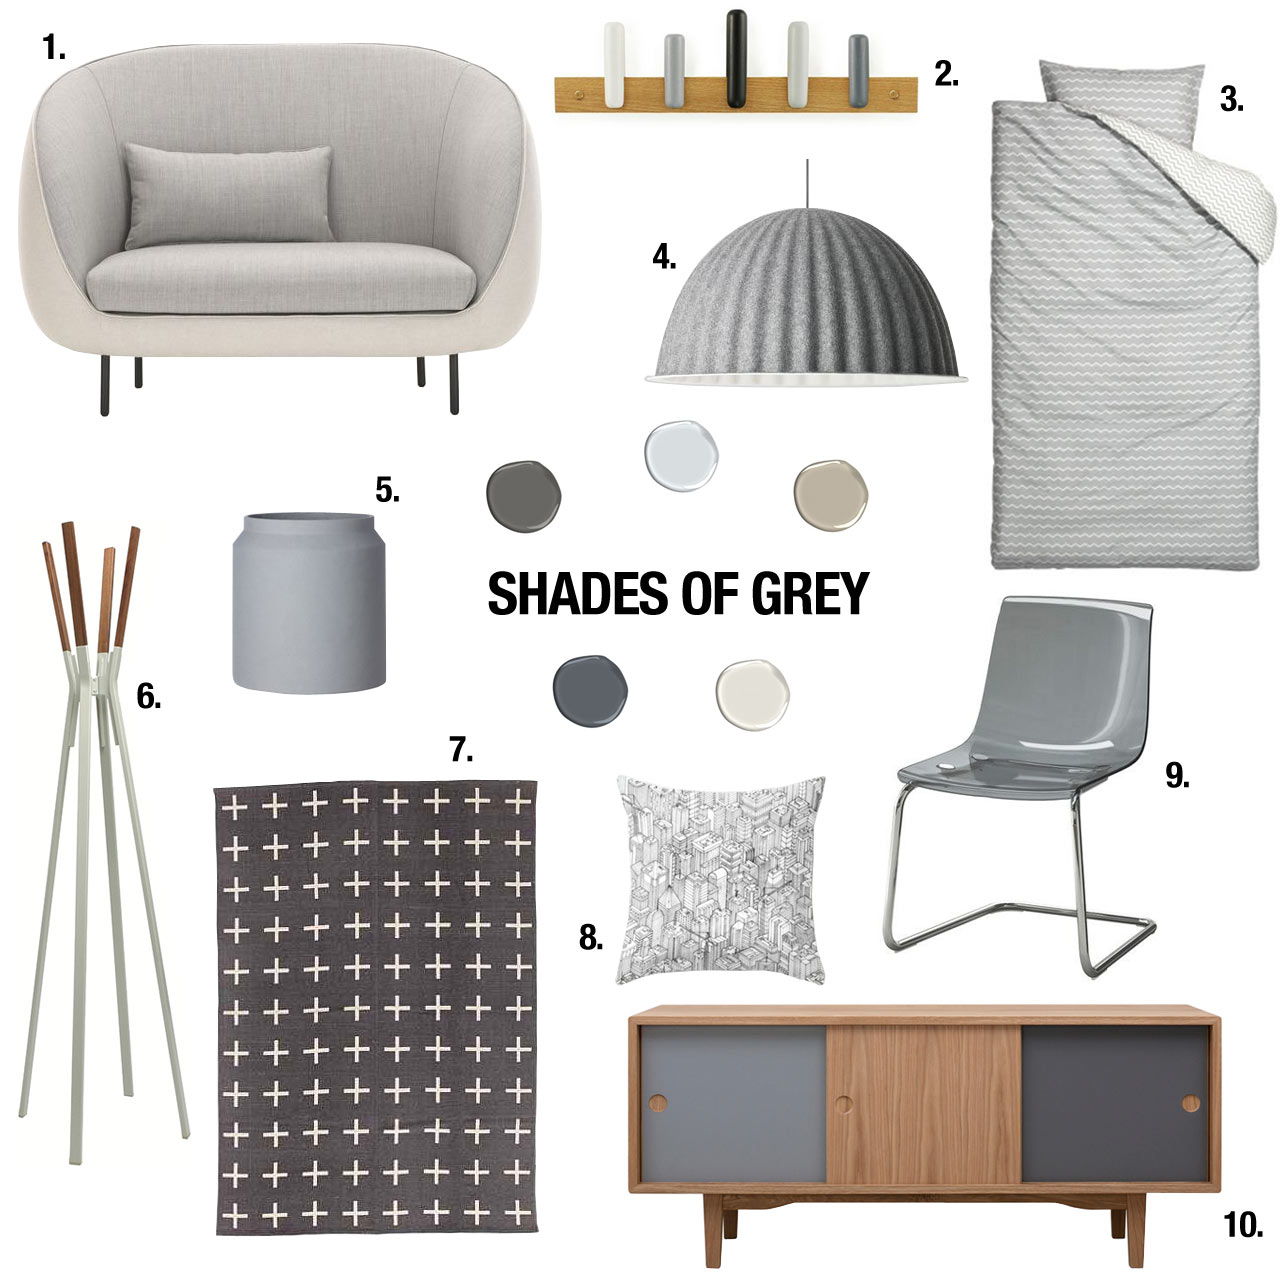 50 Shades Of Grey Decorations 50 Shades Of Grey Ok 10 For Your Home Design Milk